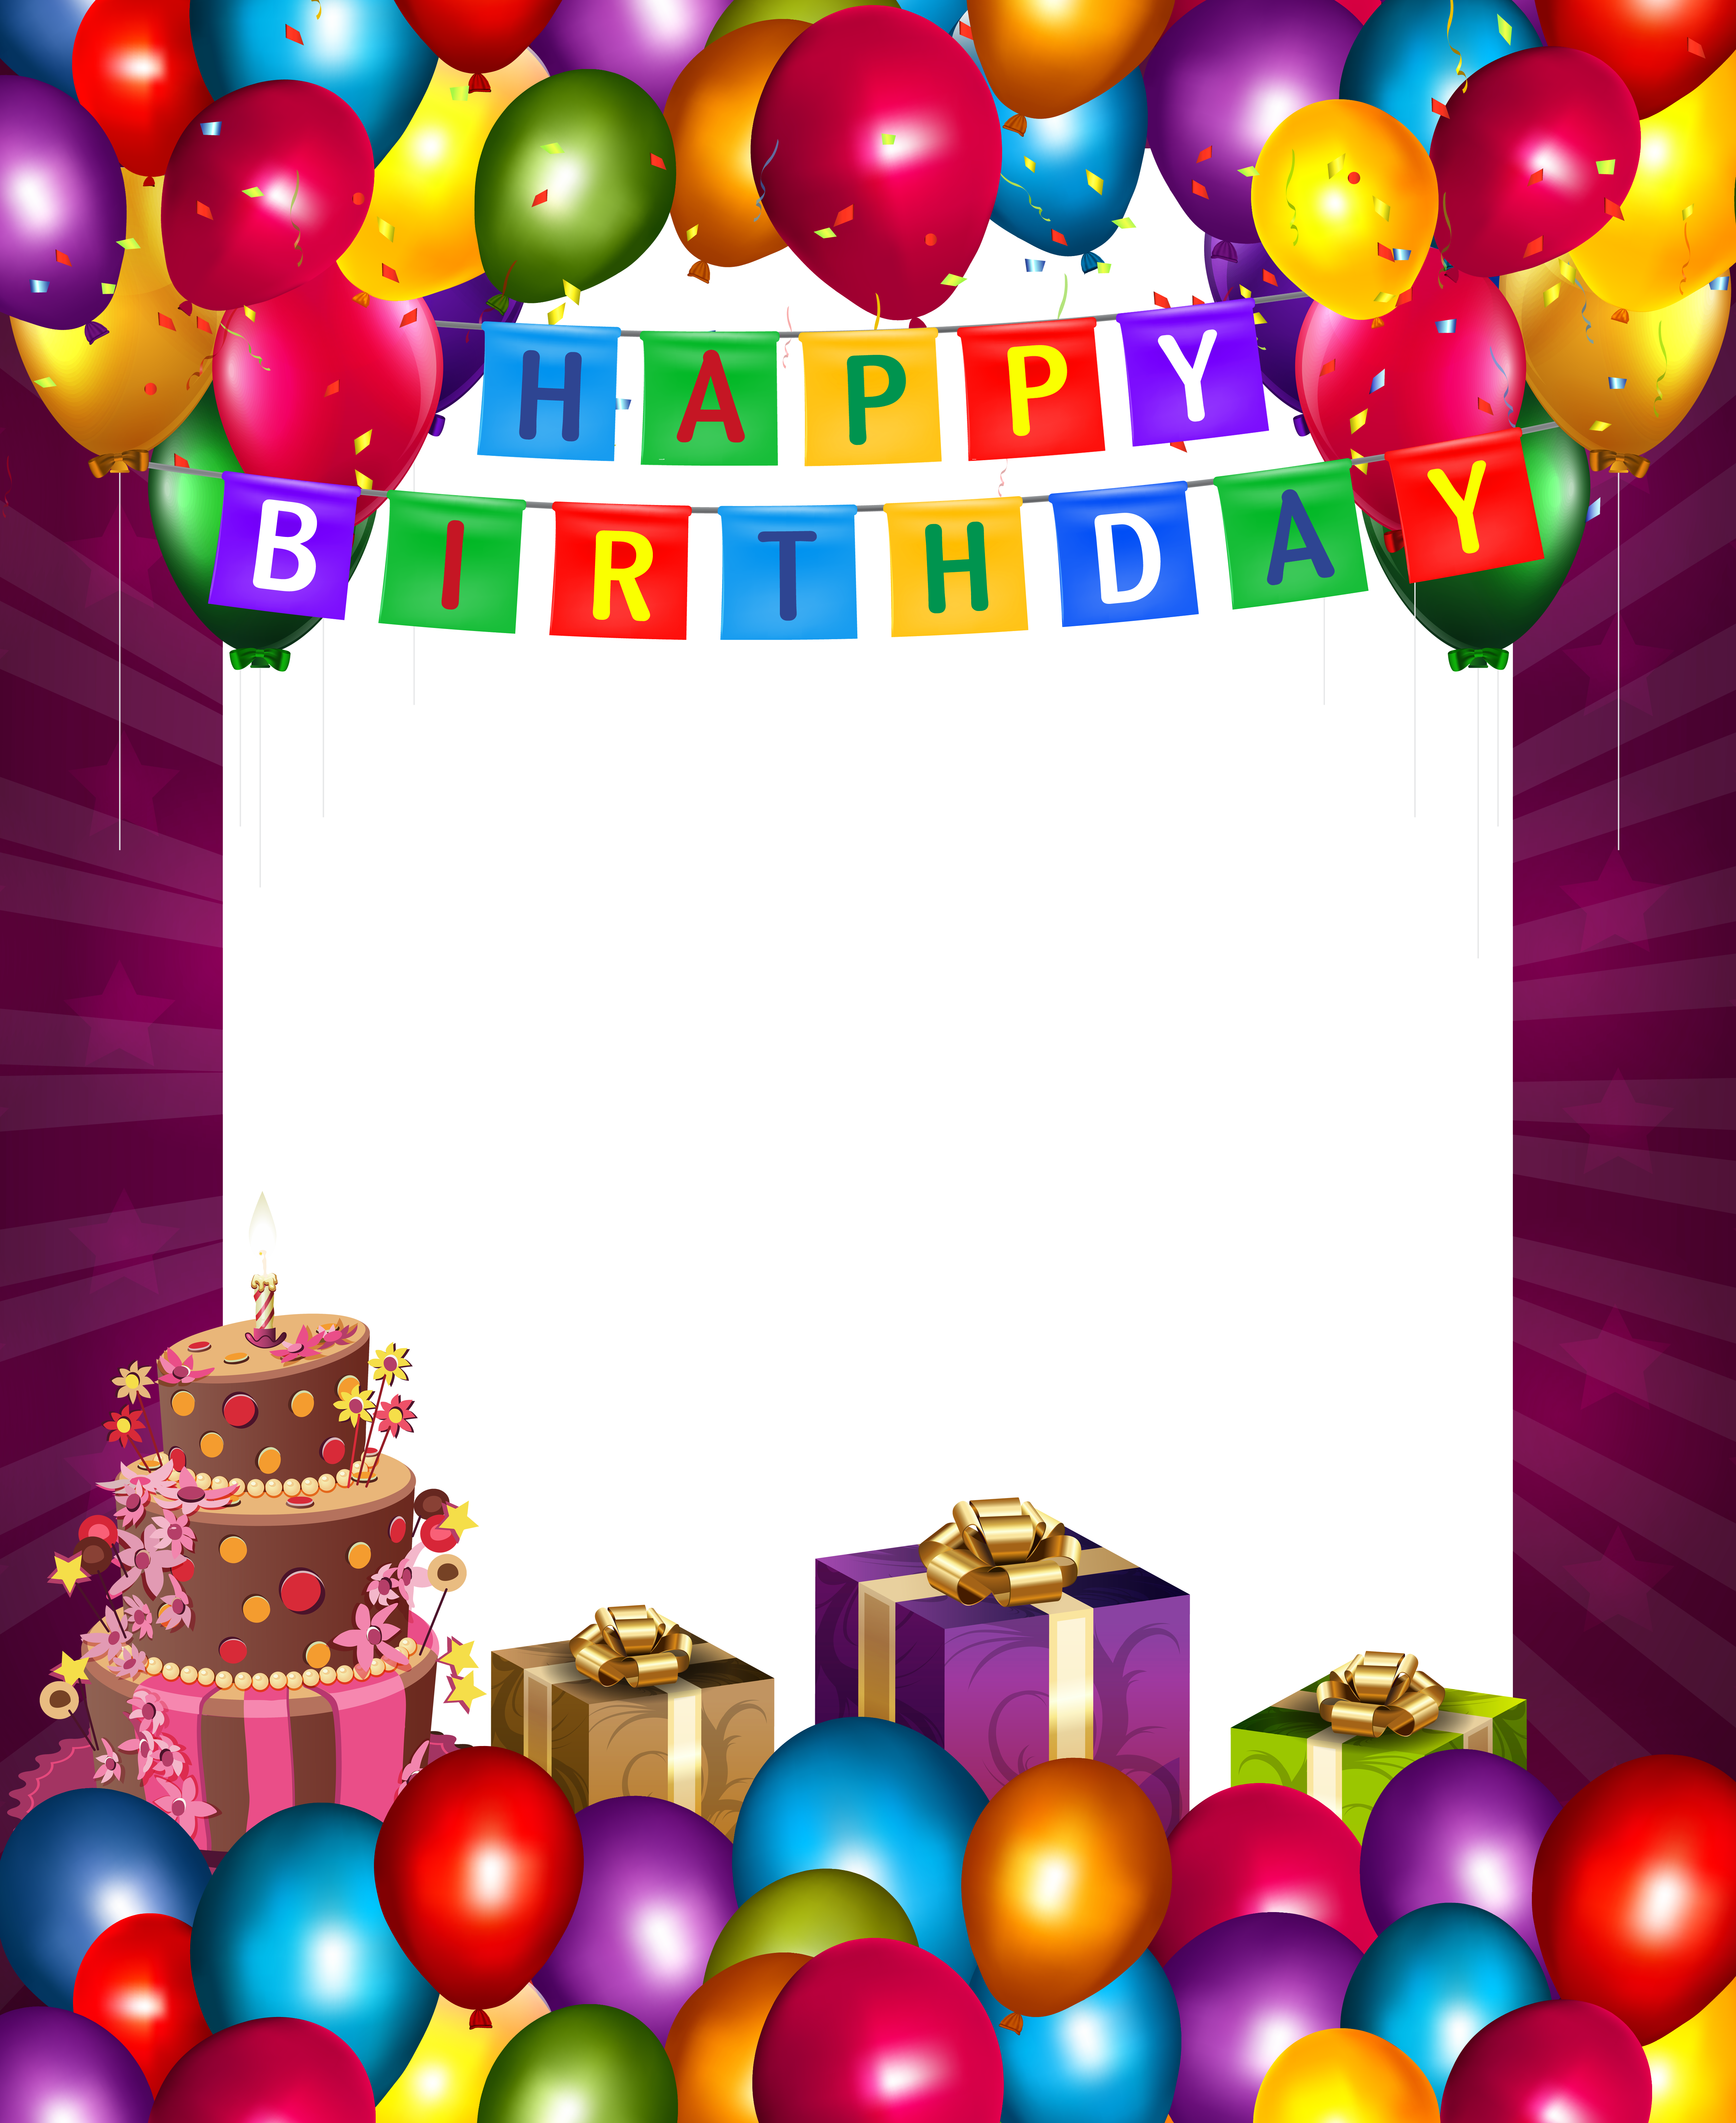 Birthday photo frame png. Happy with balloons transparent